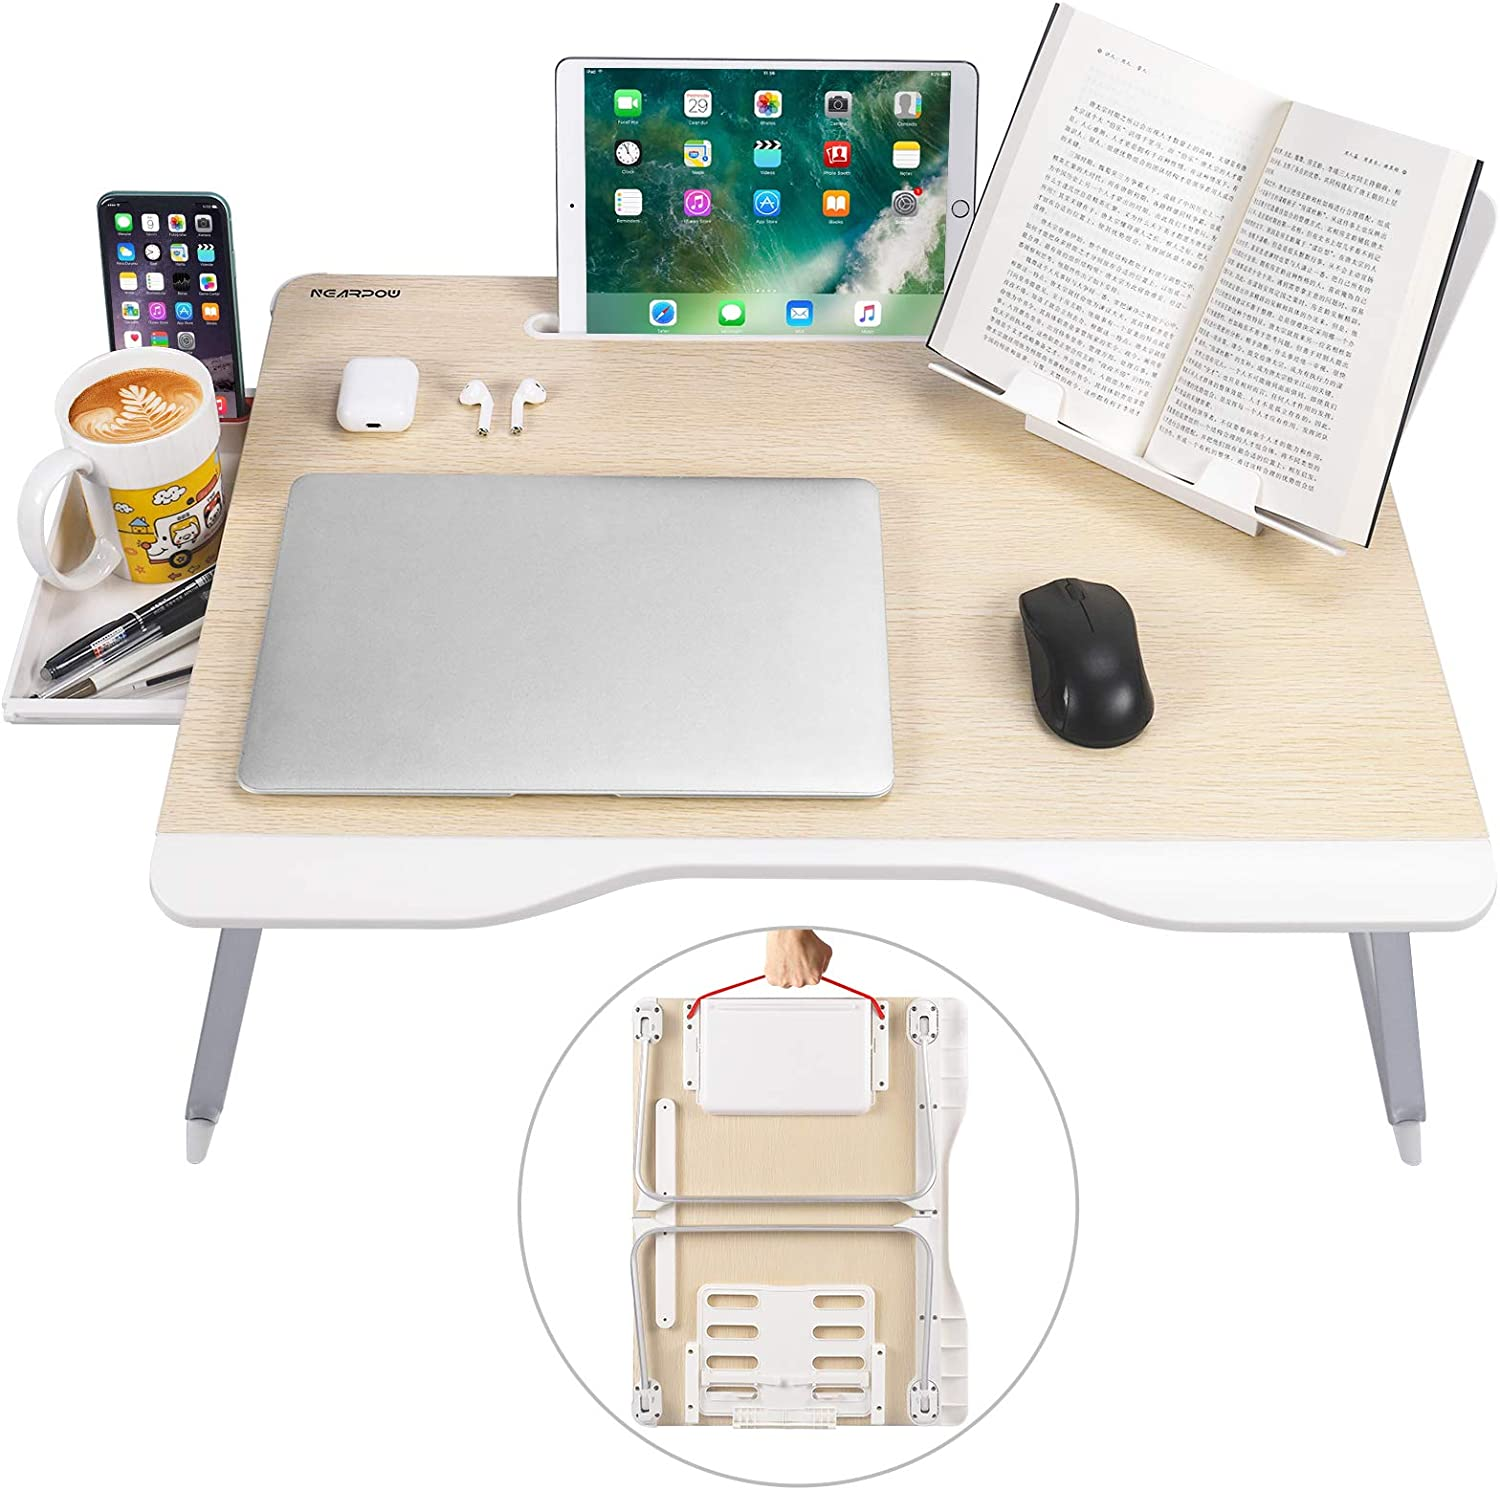 Laptop Bed Table, NEARPOW XXL Bed Trays for Eating, Laptops, Writing, Study and Drawing- Laptop Desk for Bed, Sofa and Couch- Folding Laptop Standwith Portable Book Stand and Drawer Storage - Wood